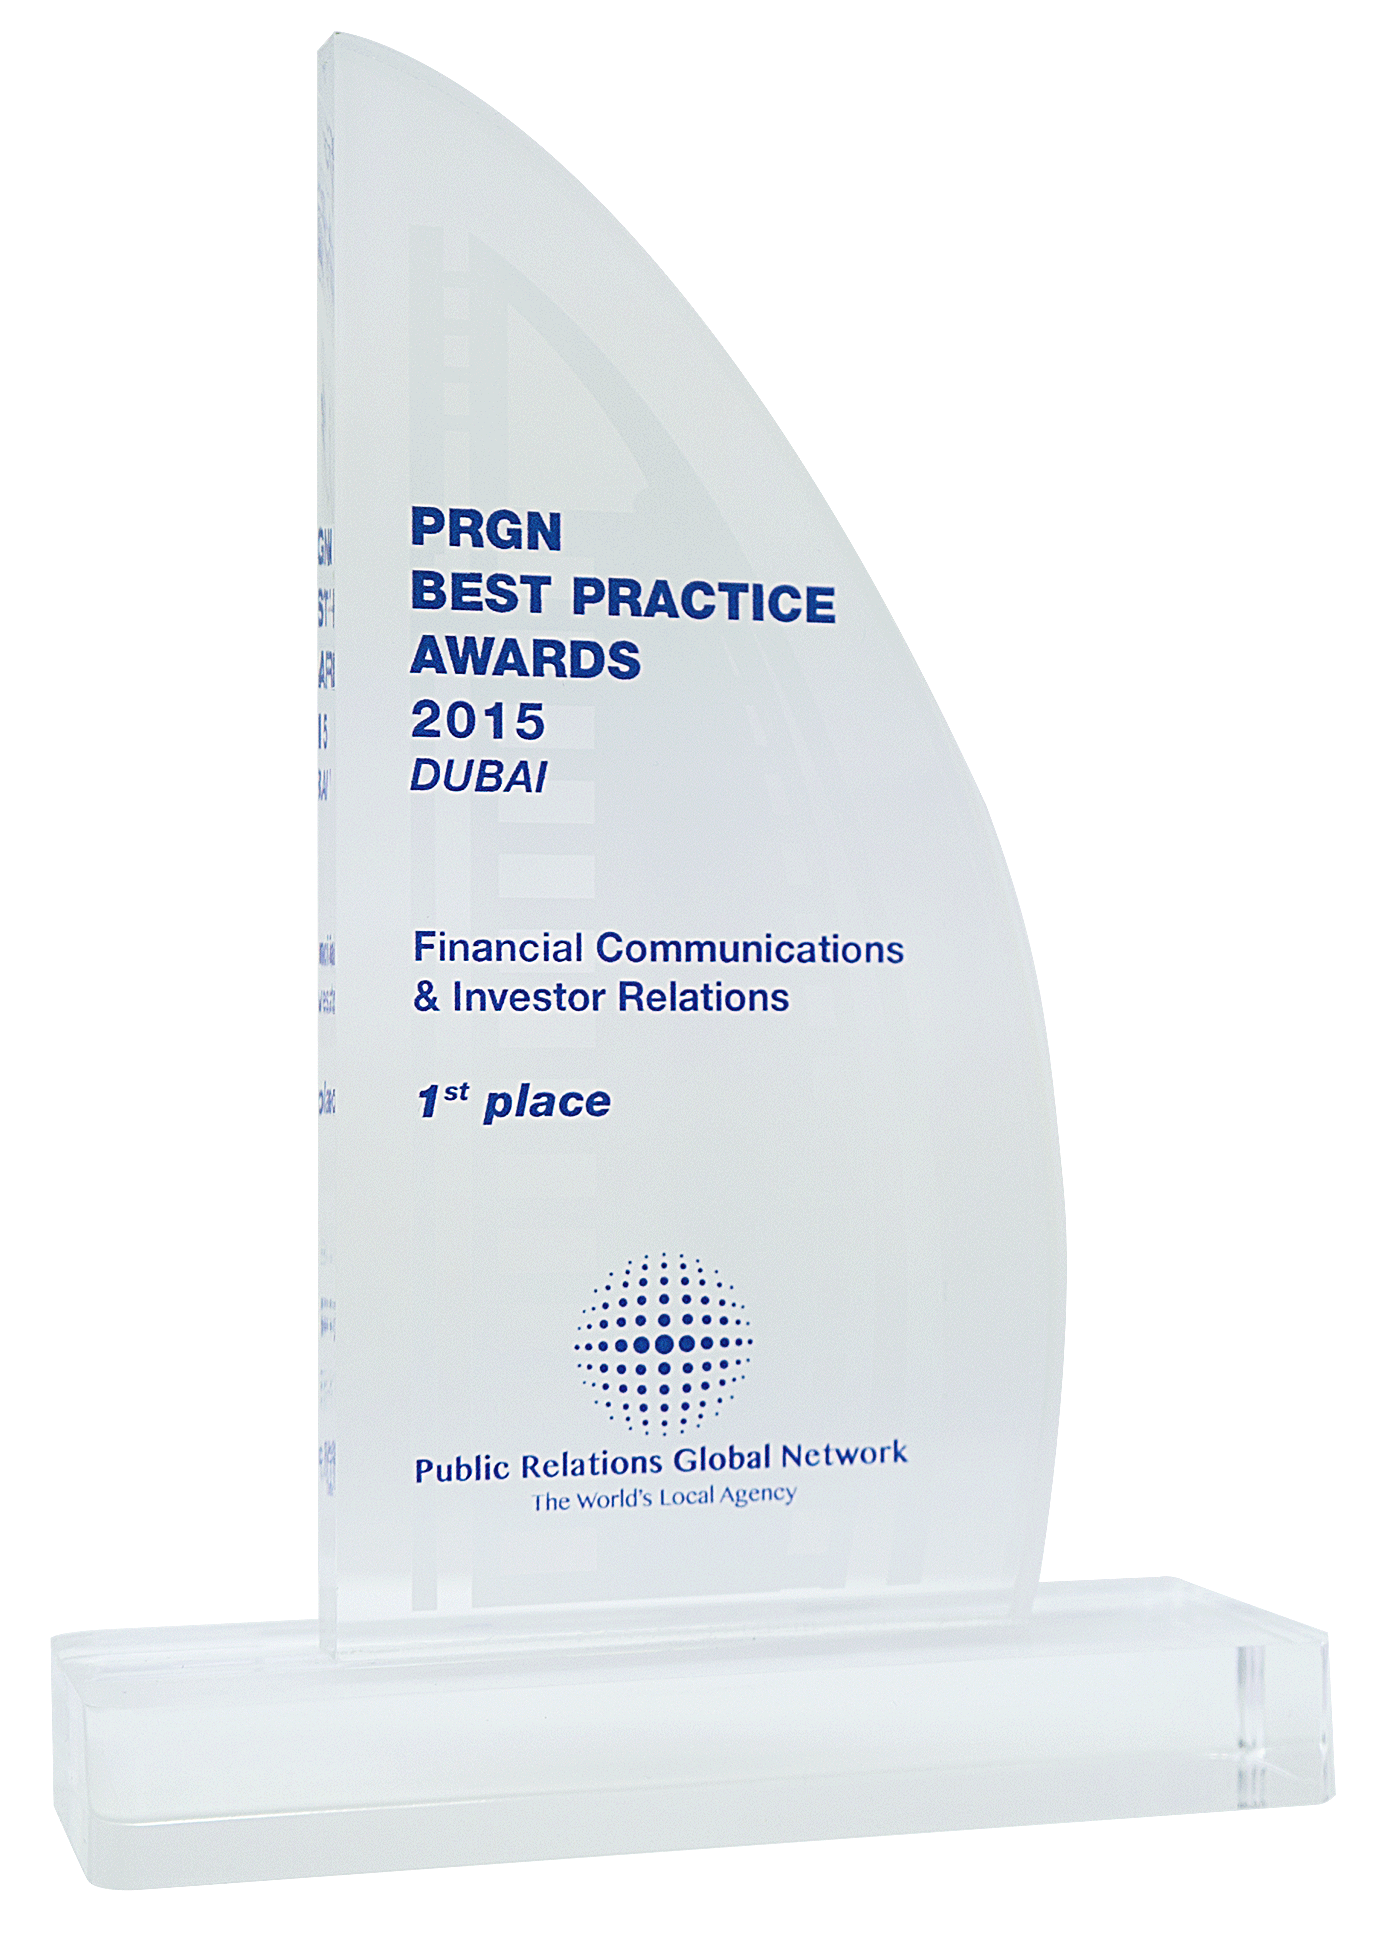 PRGN_Best Practice Awards_2015_Dubai